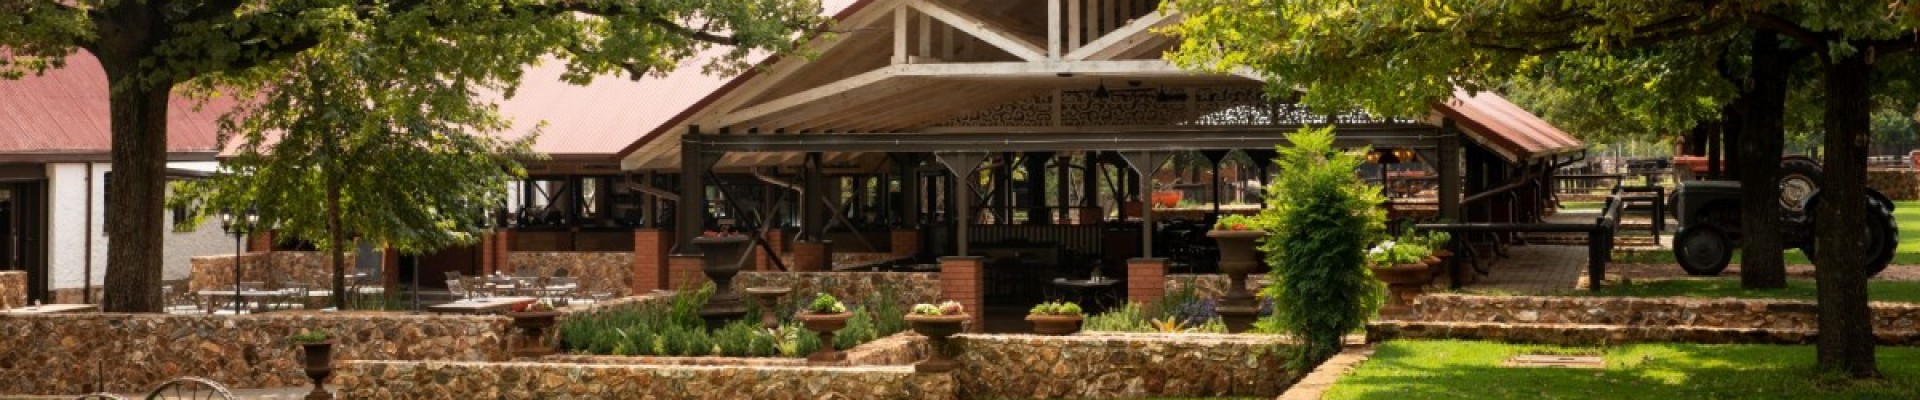 5* African Pride Irene Country Lodge - Couples Midweek Package (1 Night)